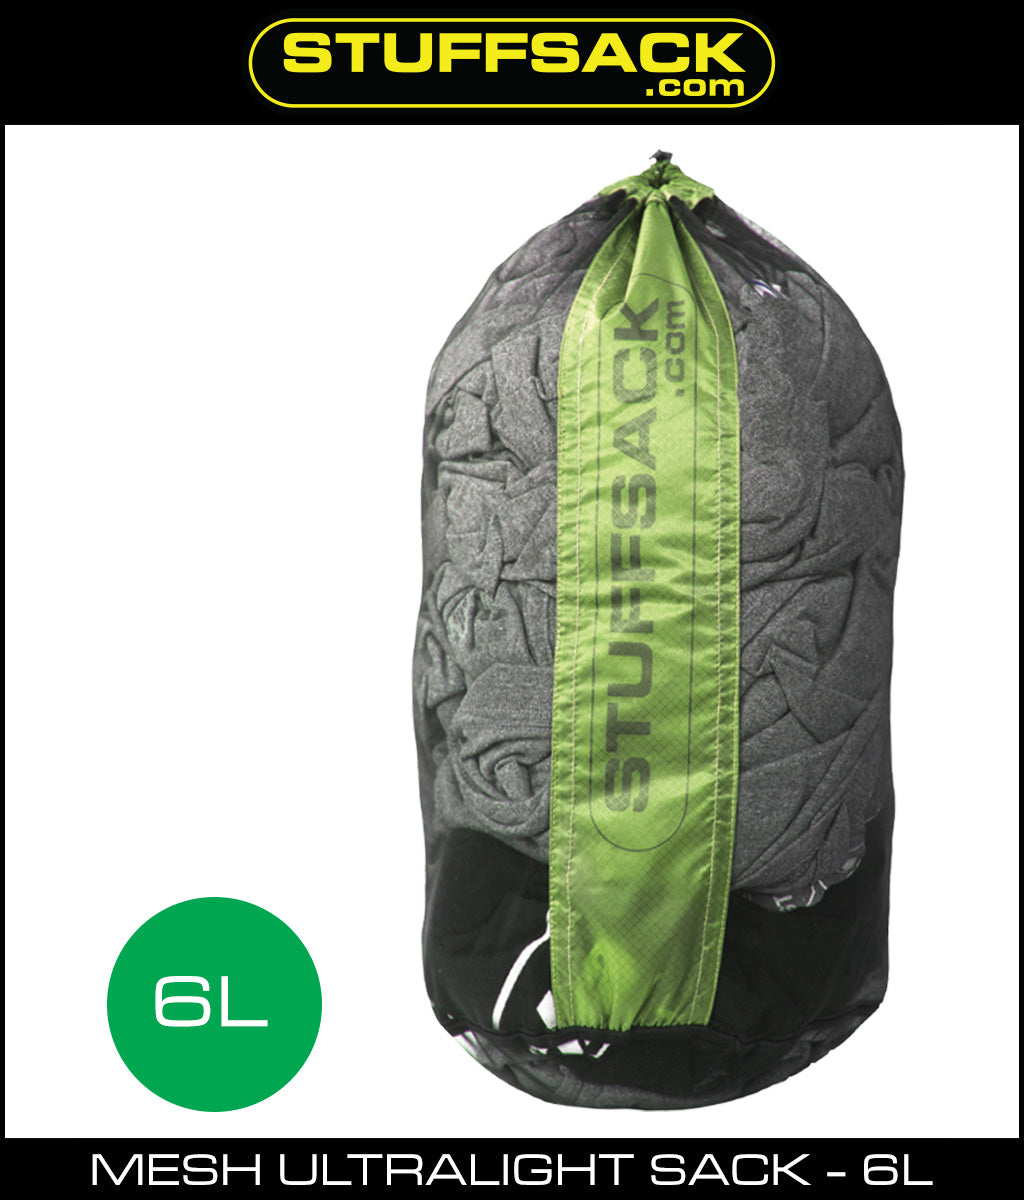 Stuffsack.com Mesh Ultralight Stuff Bag - 6L - Green